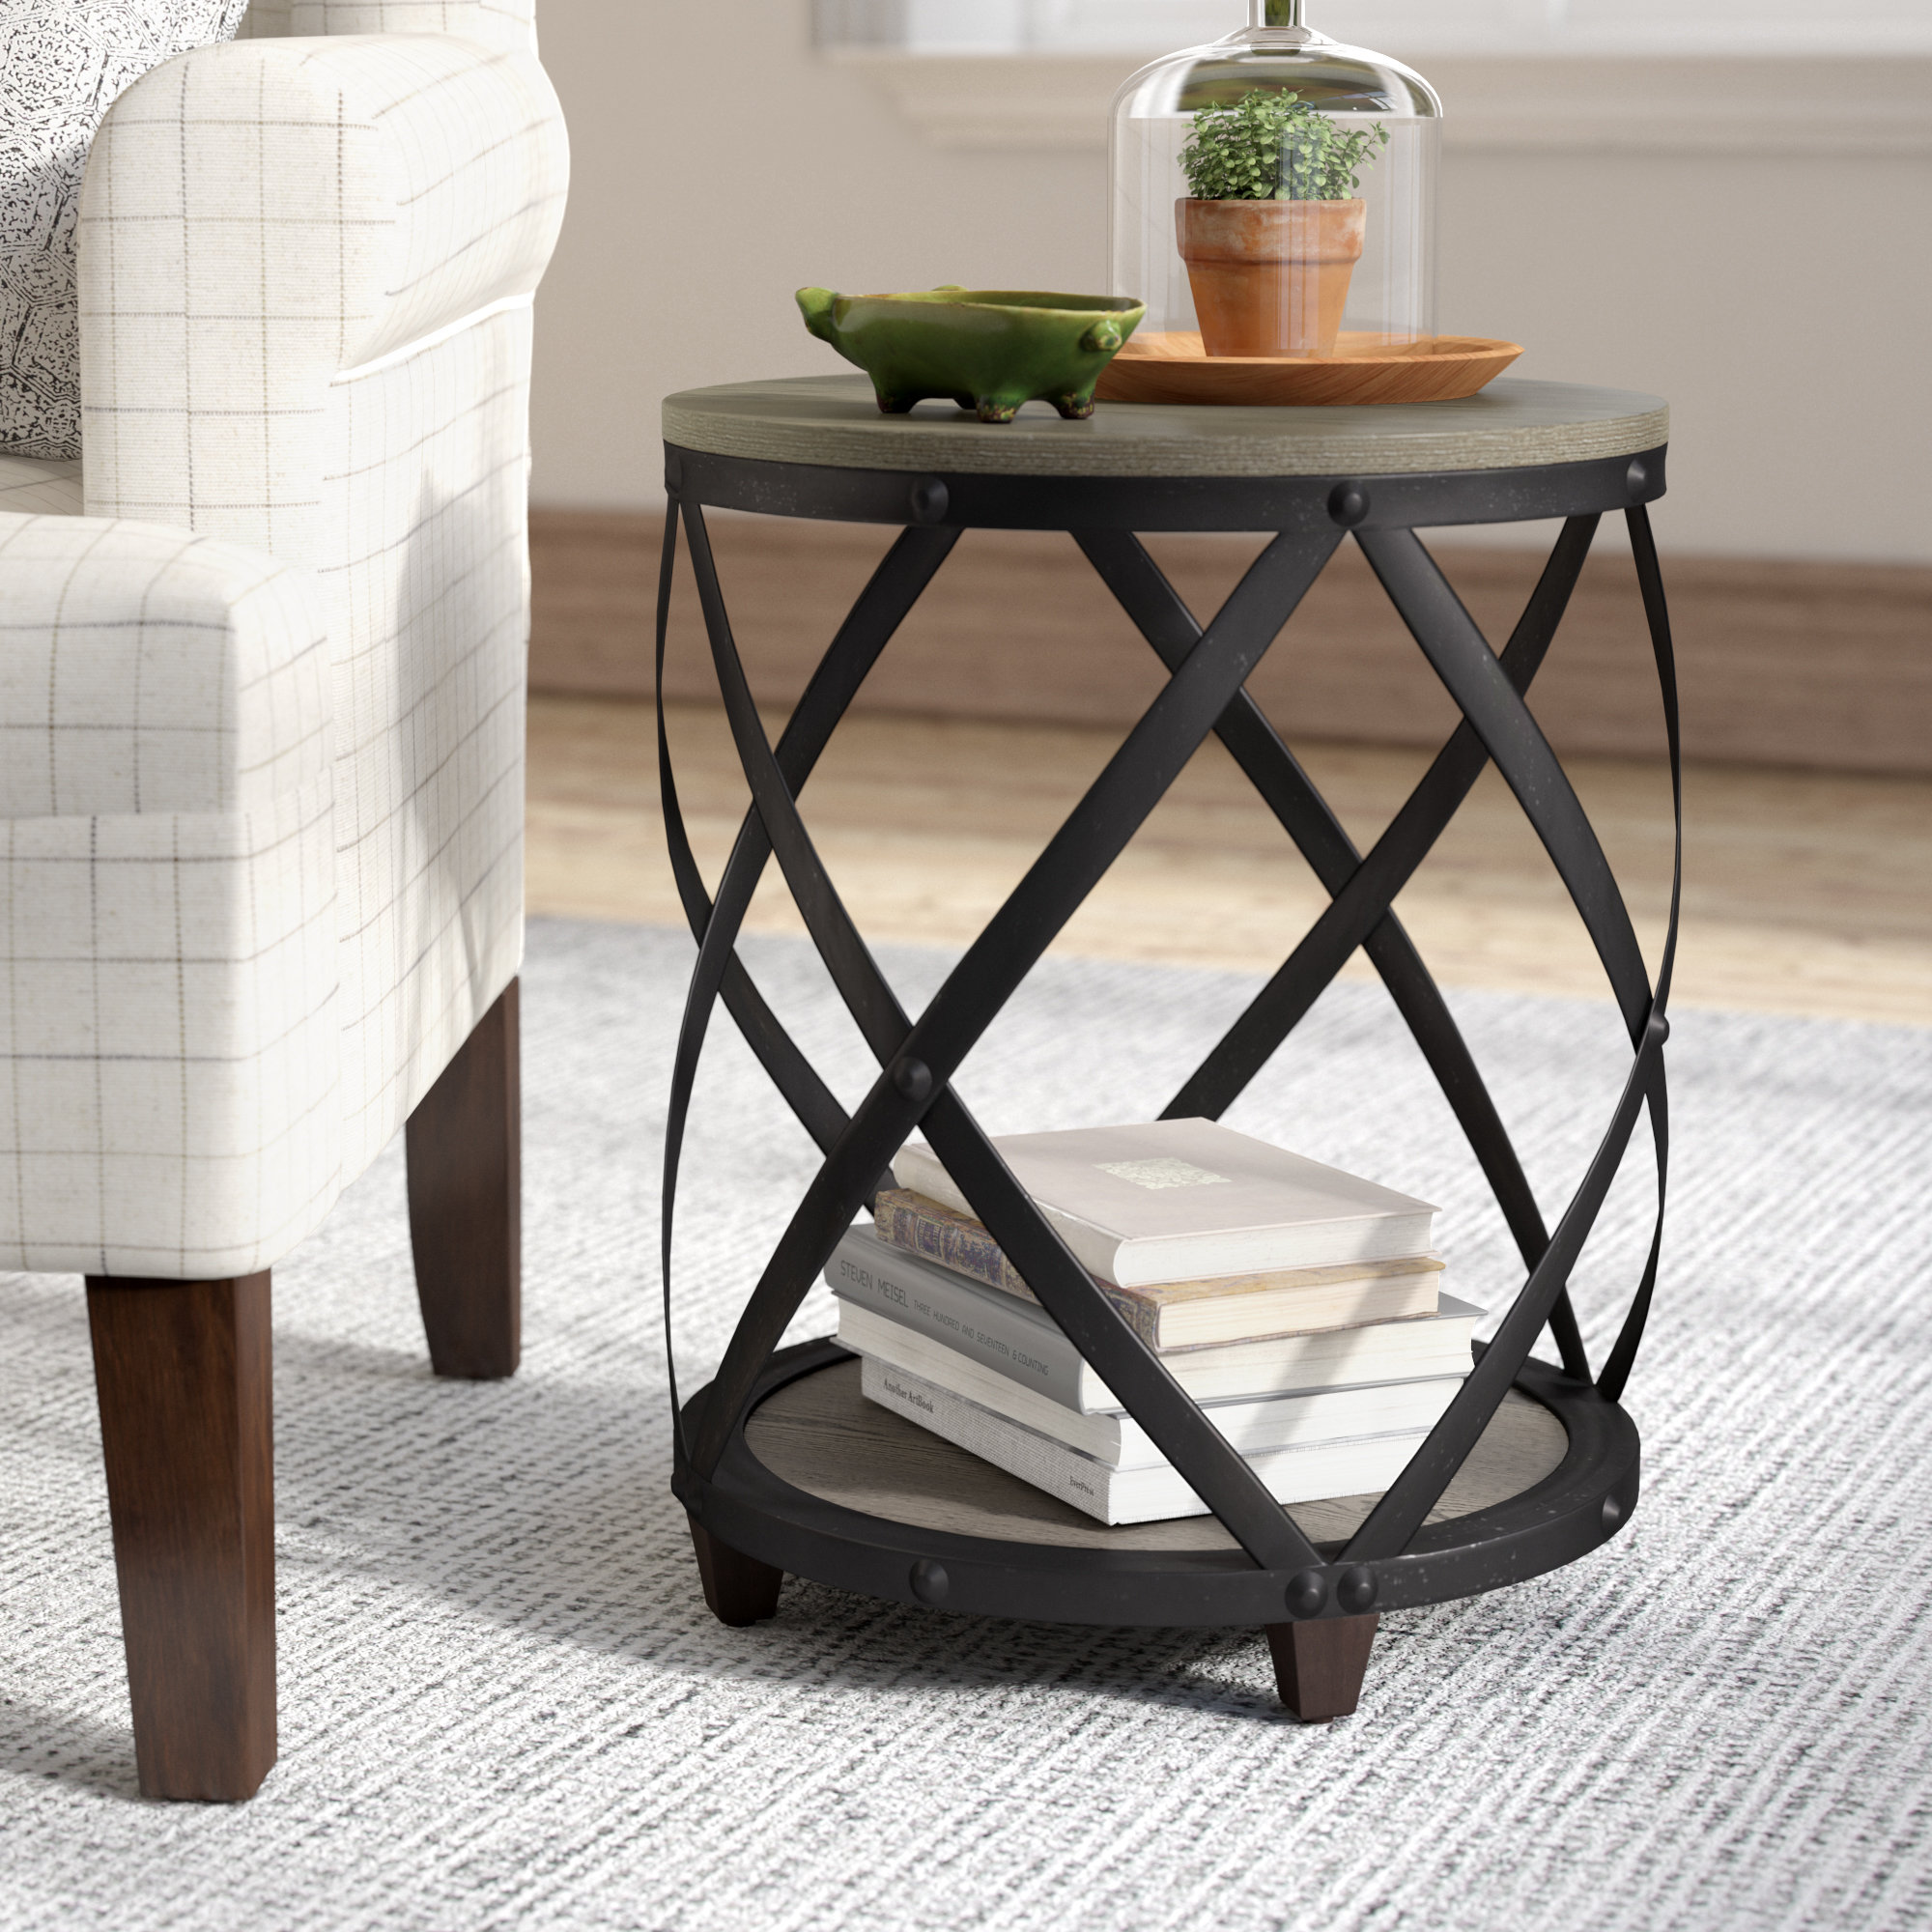 laurel foundry modern farmhouse rubino end table reviews tables our sites console width king bedroom furniture sets ashley ott laura dining room riverside pair tall lamps used